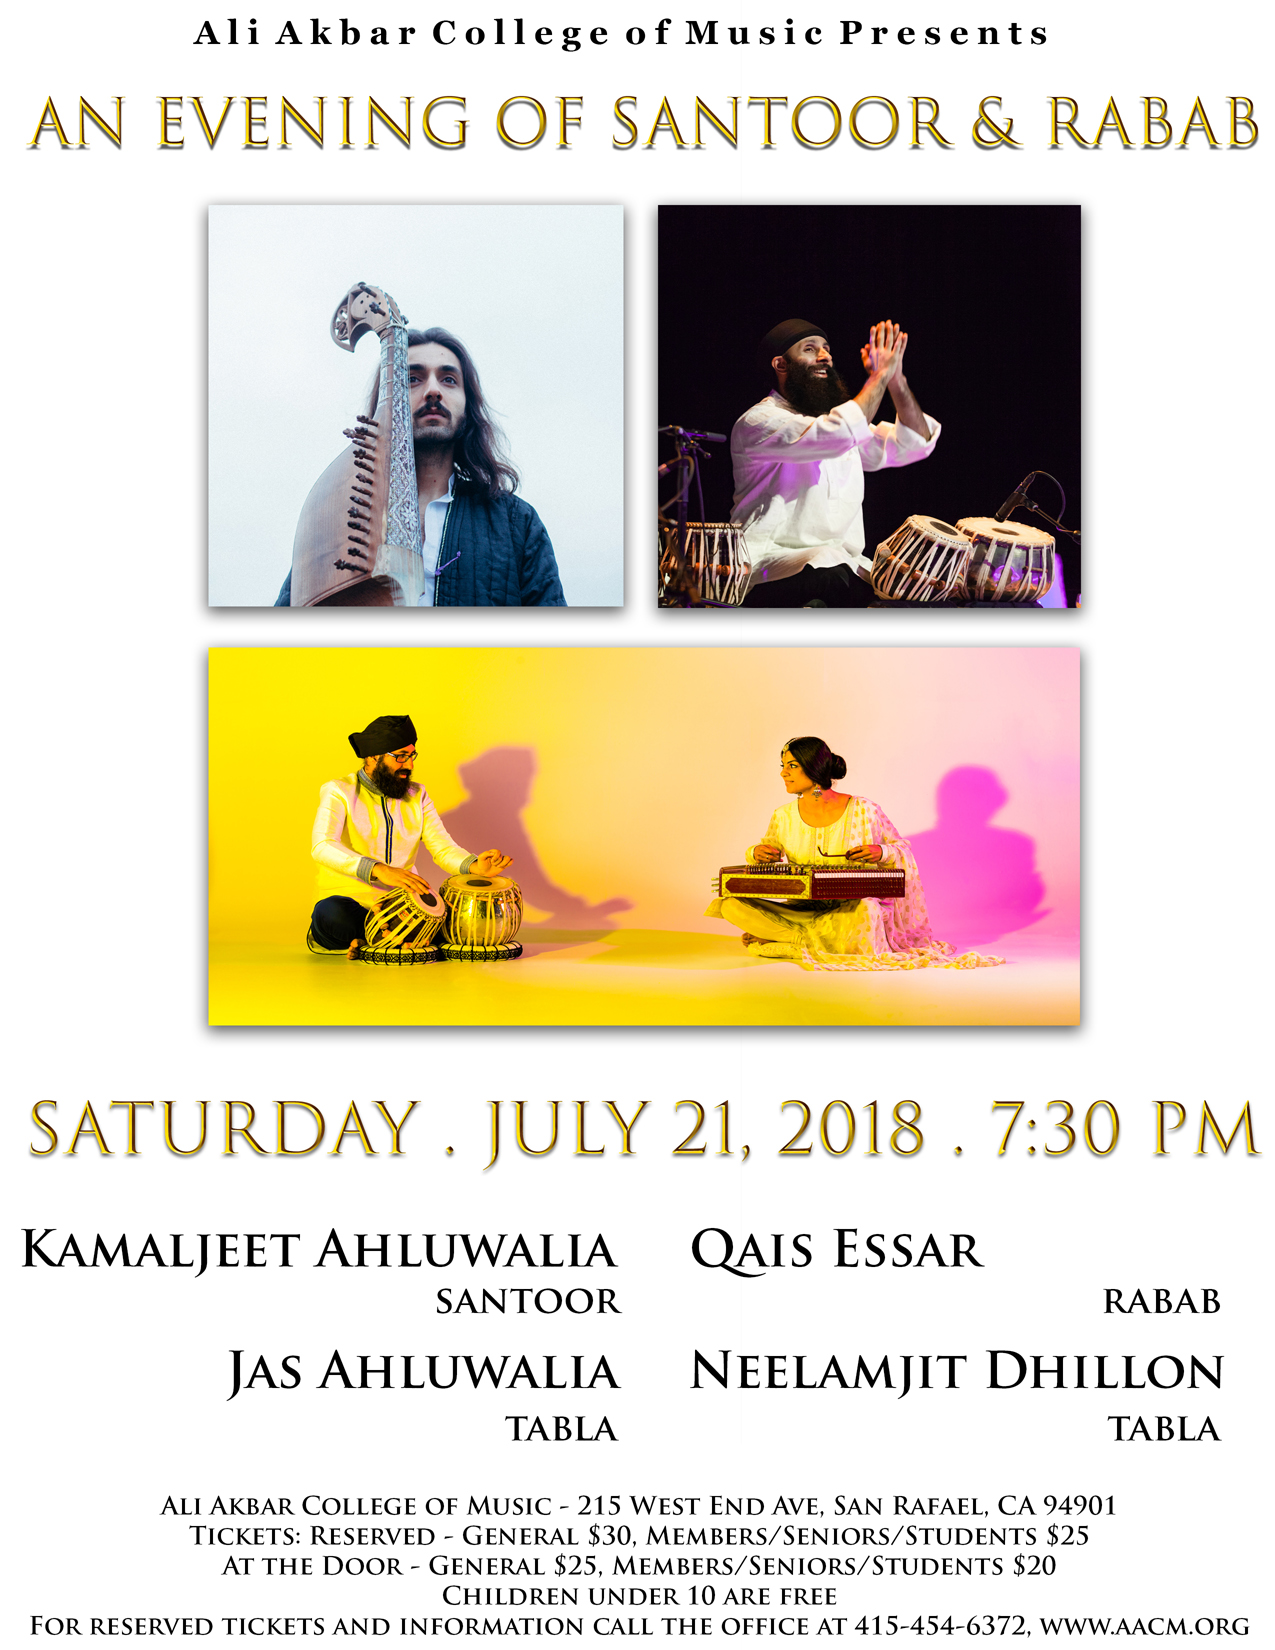 An Evening of Santoor & Rabab